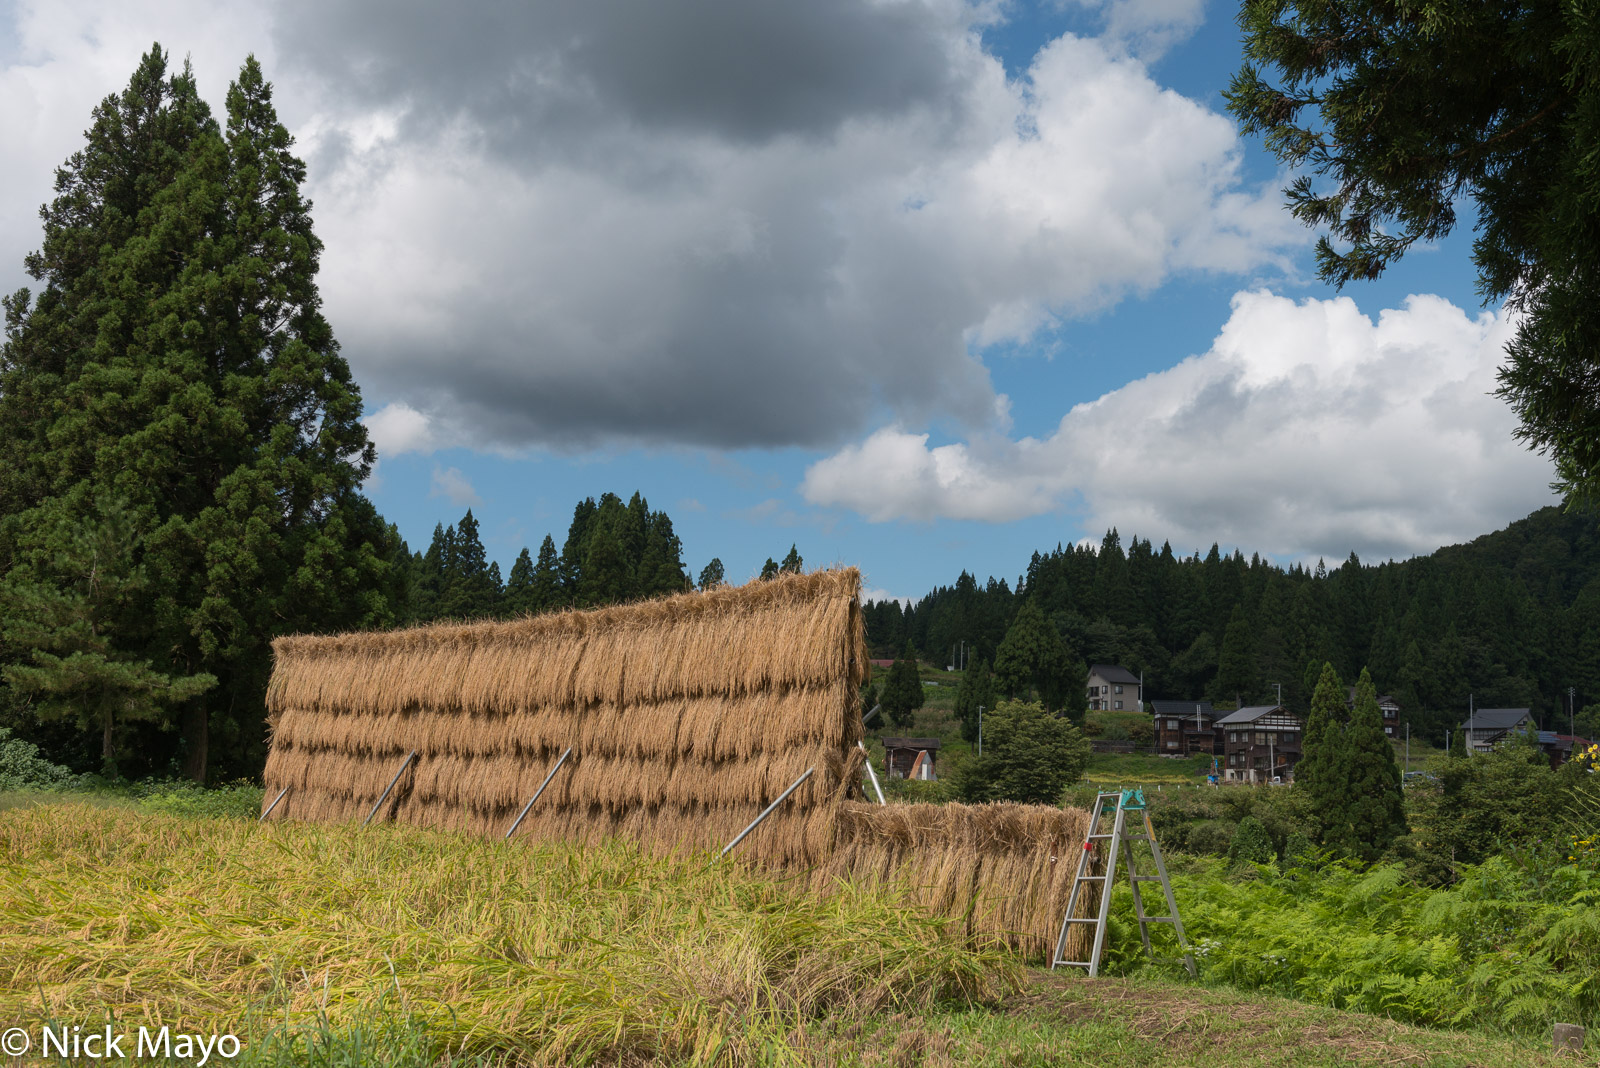 Chubu, Drying Rack, Japan, Paddy, photo